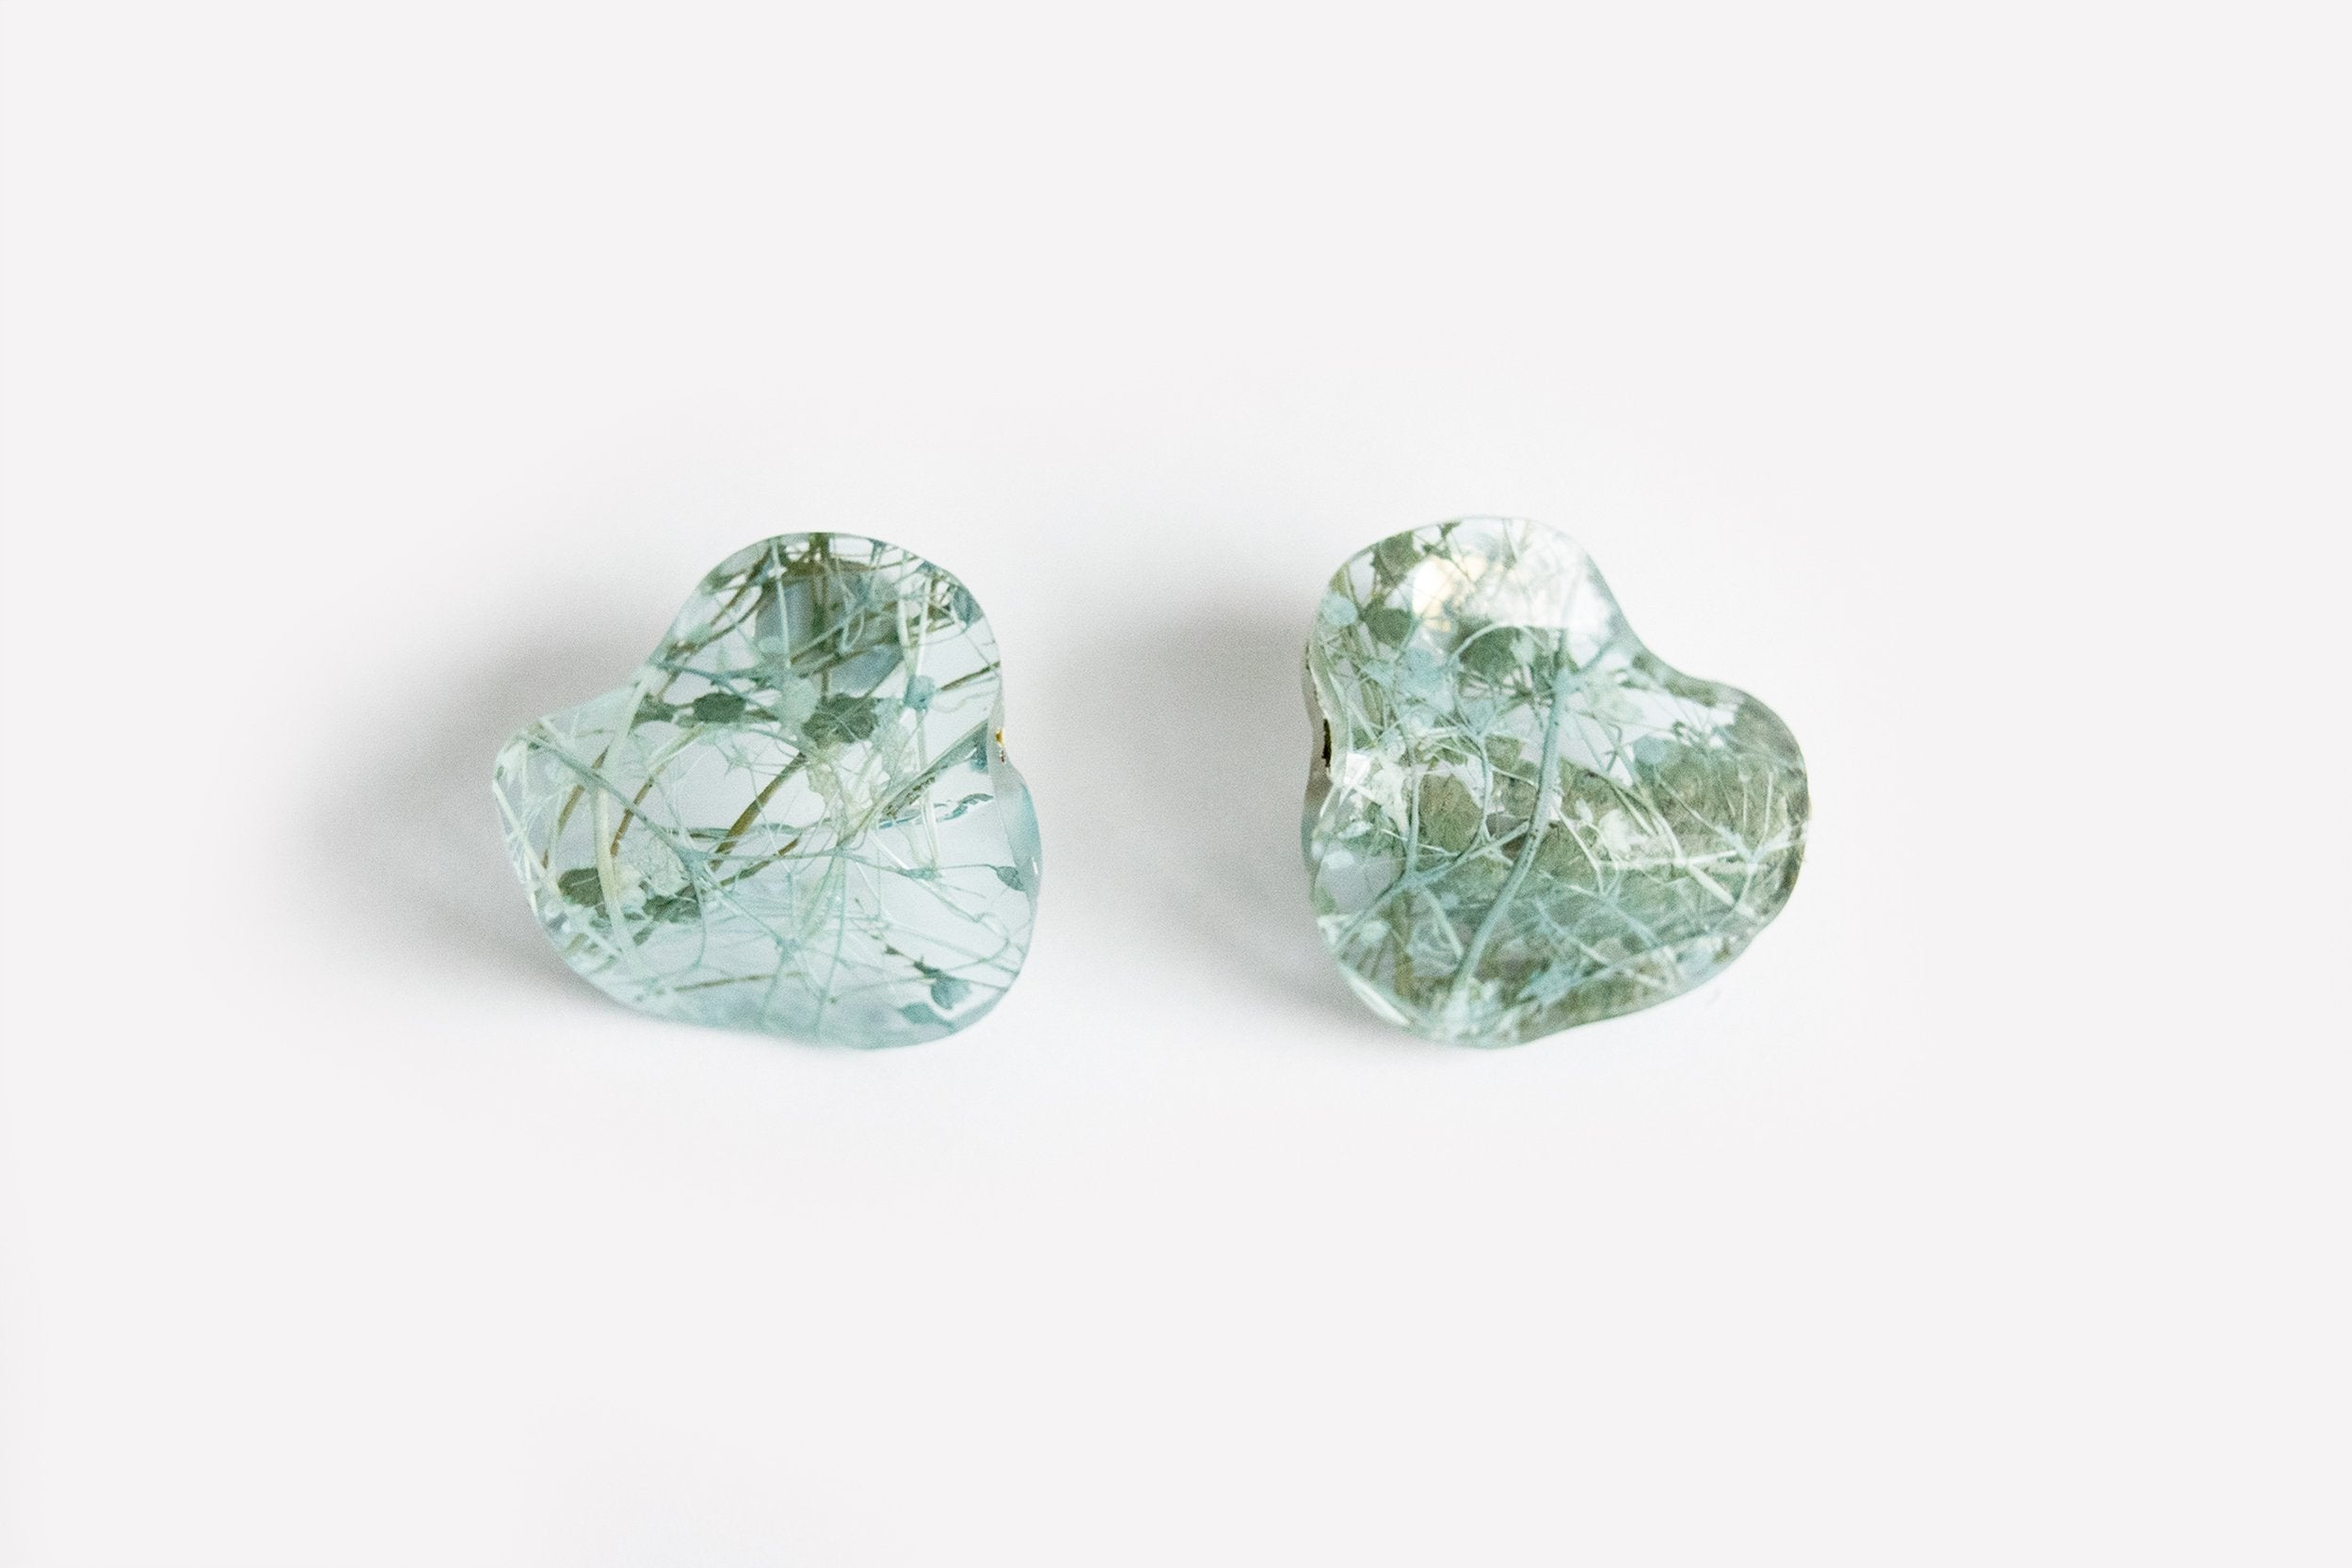 Ecoresin Earrings - Flow Small Stud